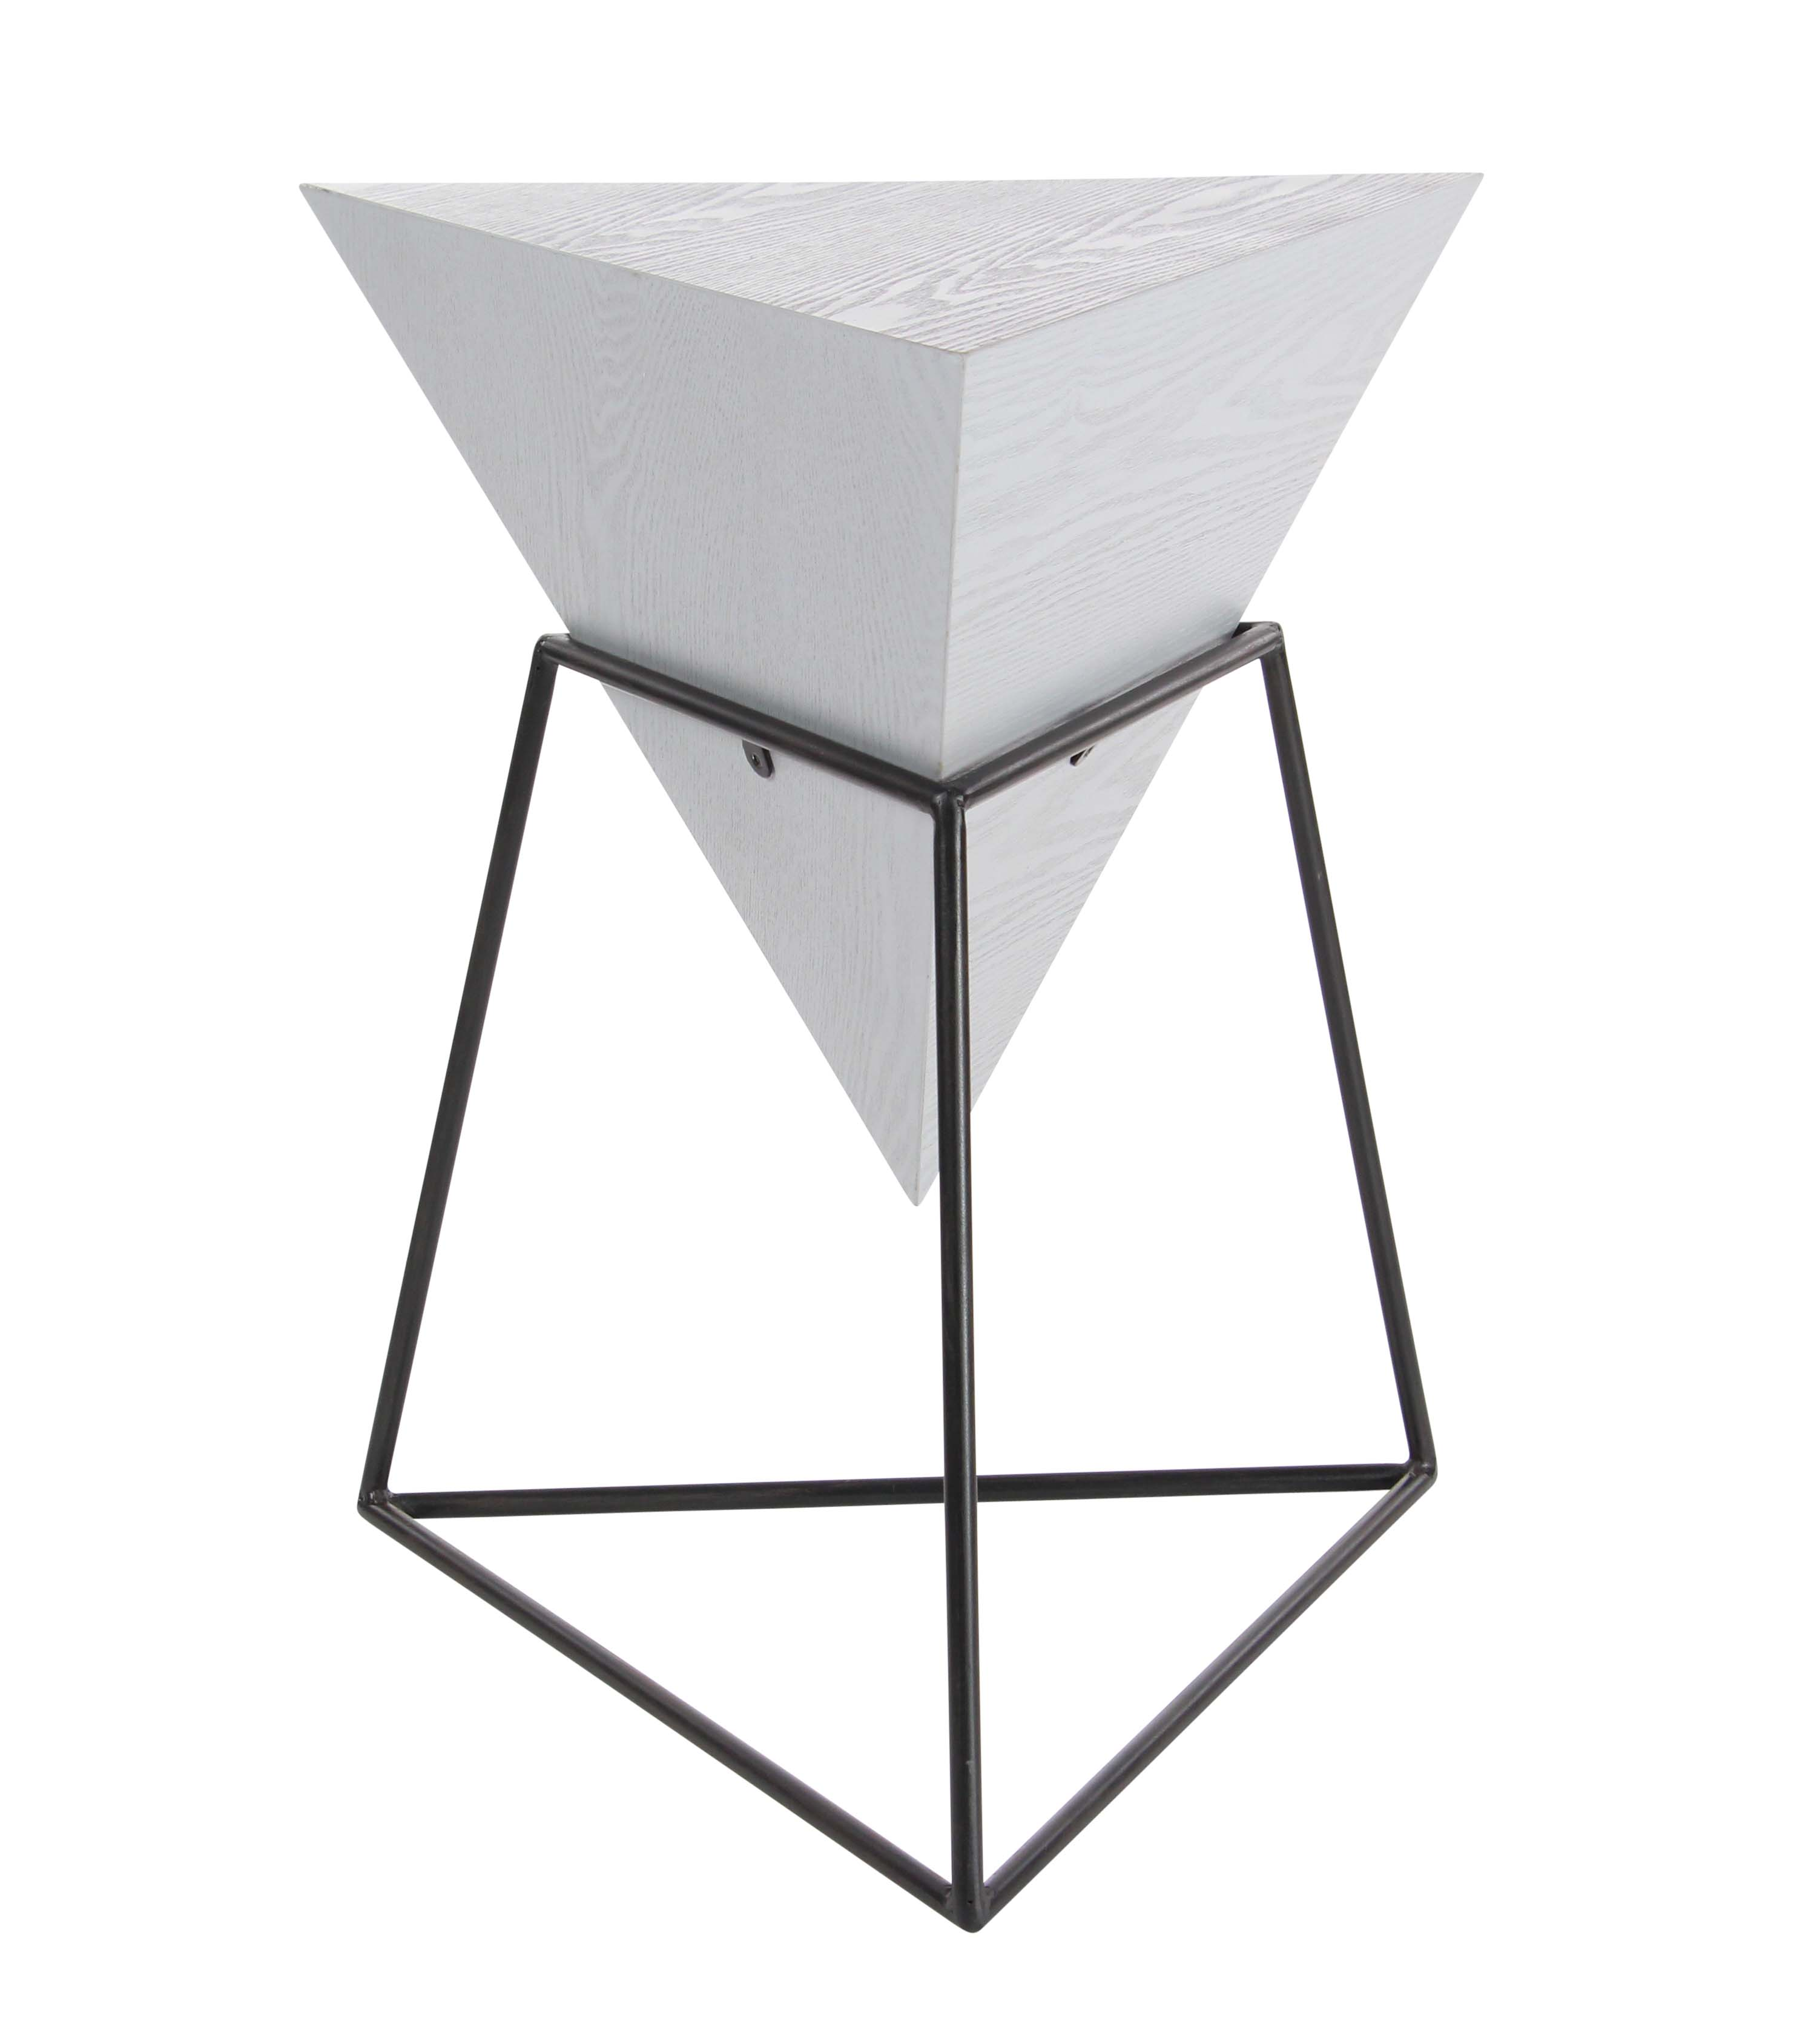 Decmode Modern 24 X 20 Inch Wood and Metal Triangle Accent Table, Gray by DecMode